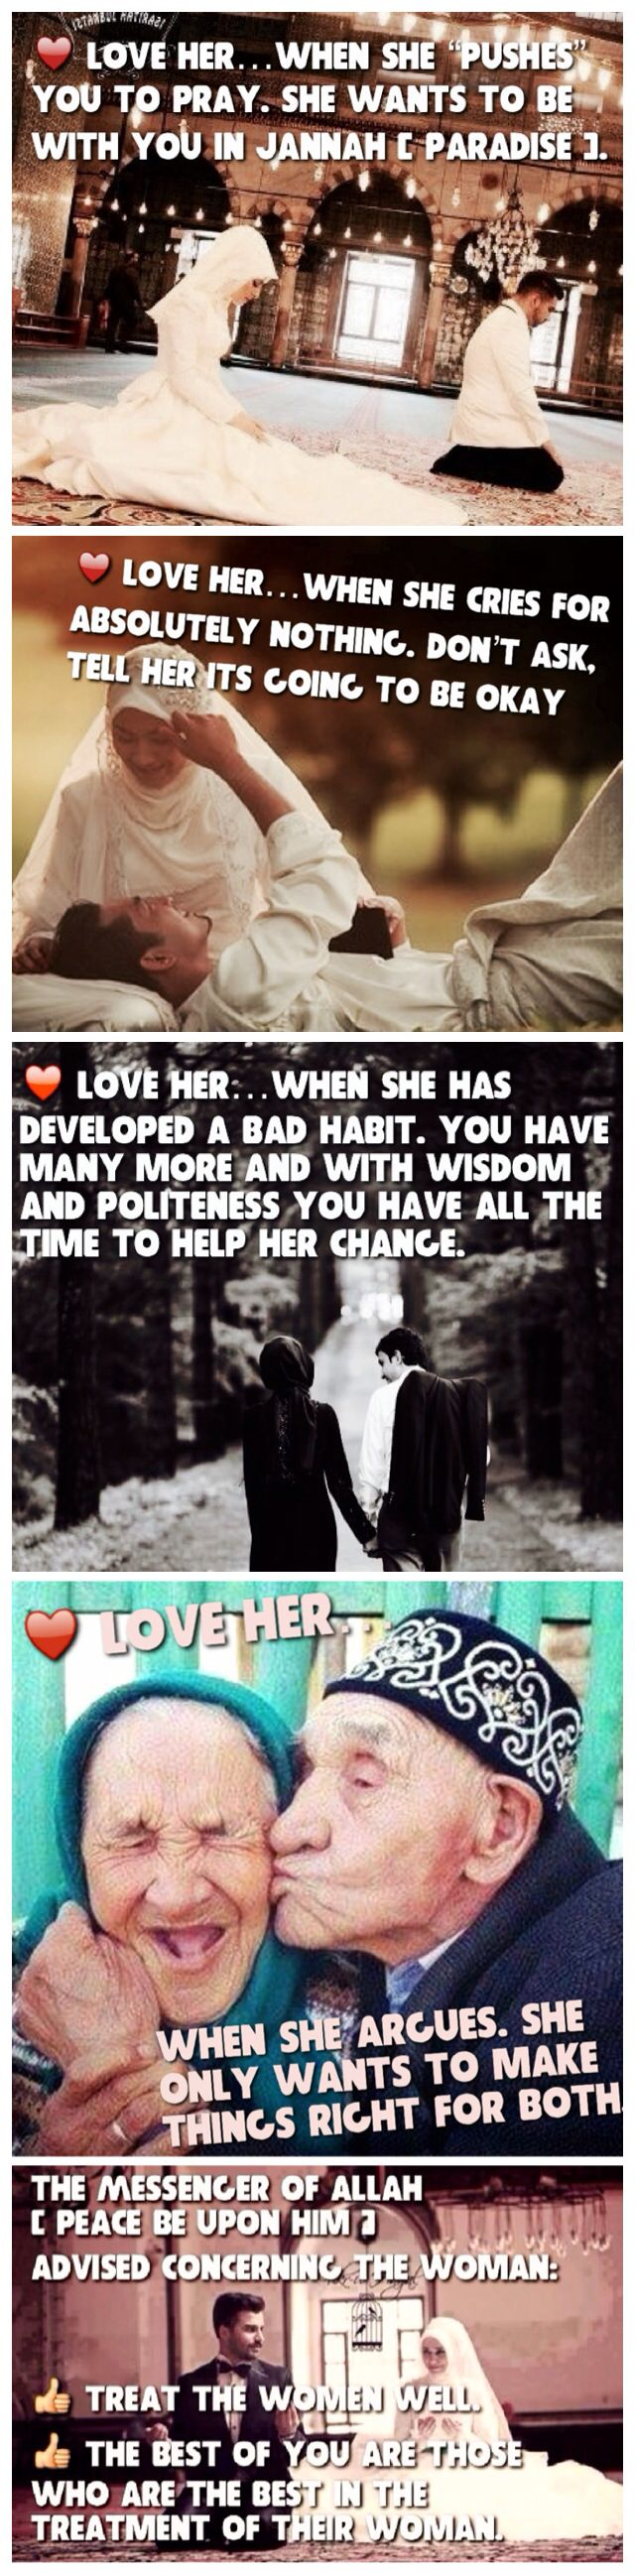 Love her because Allah ❤️